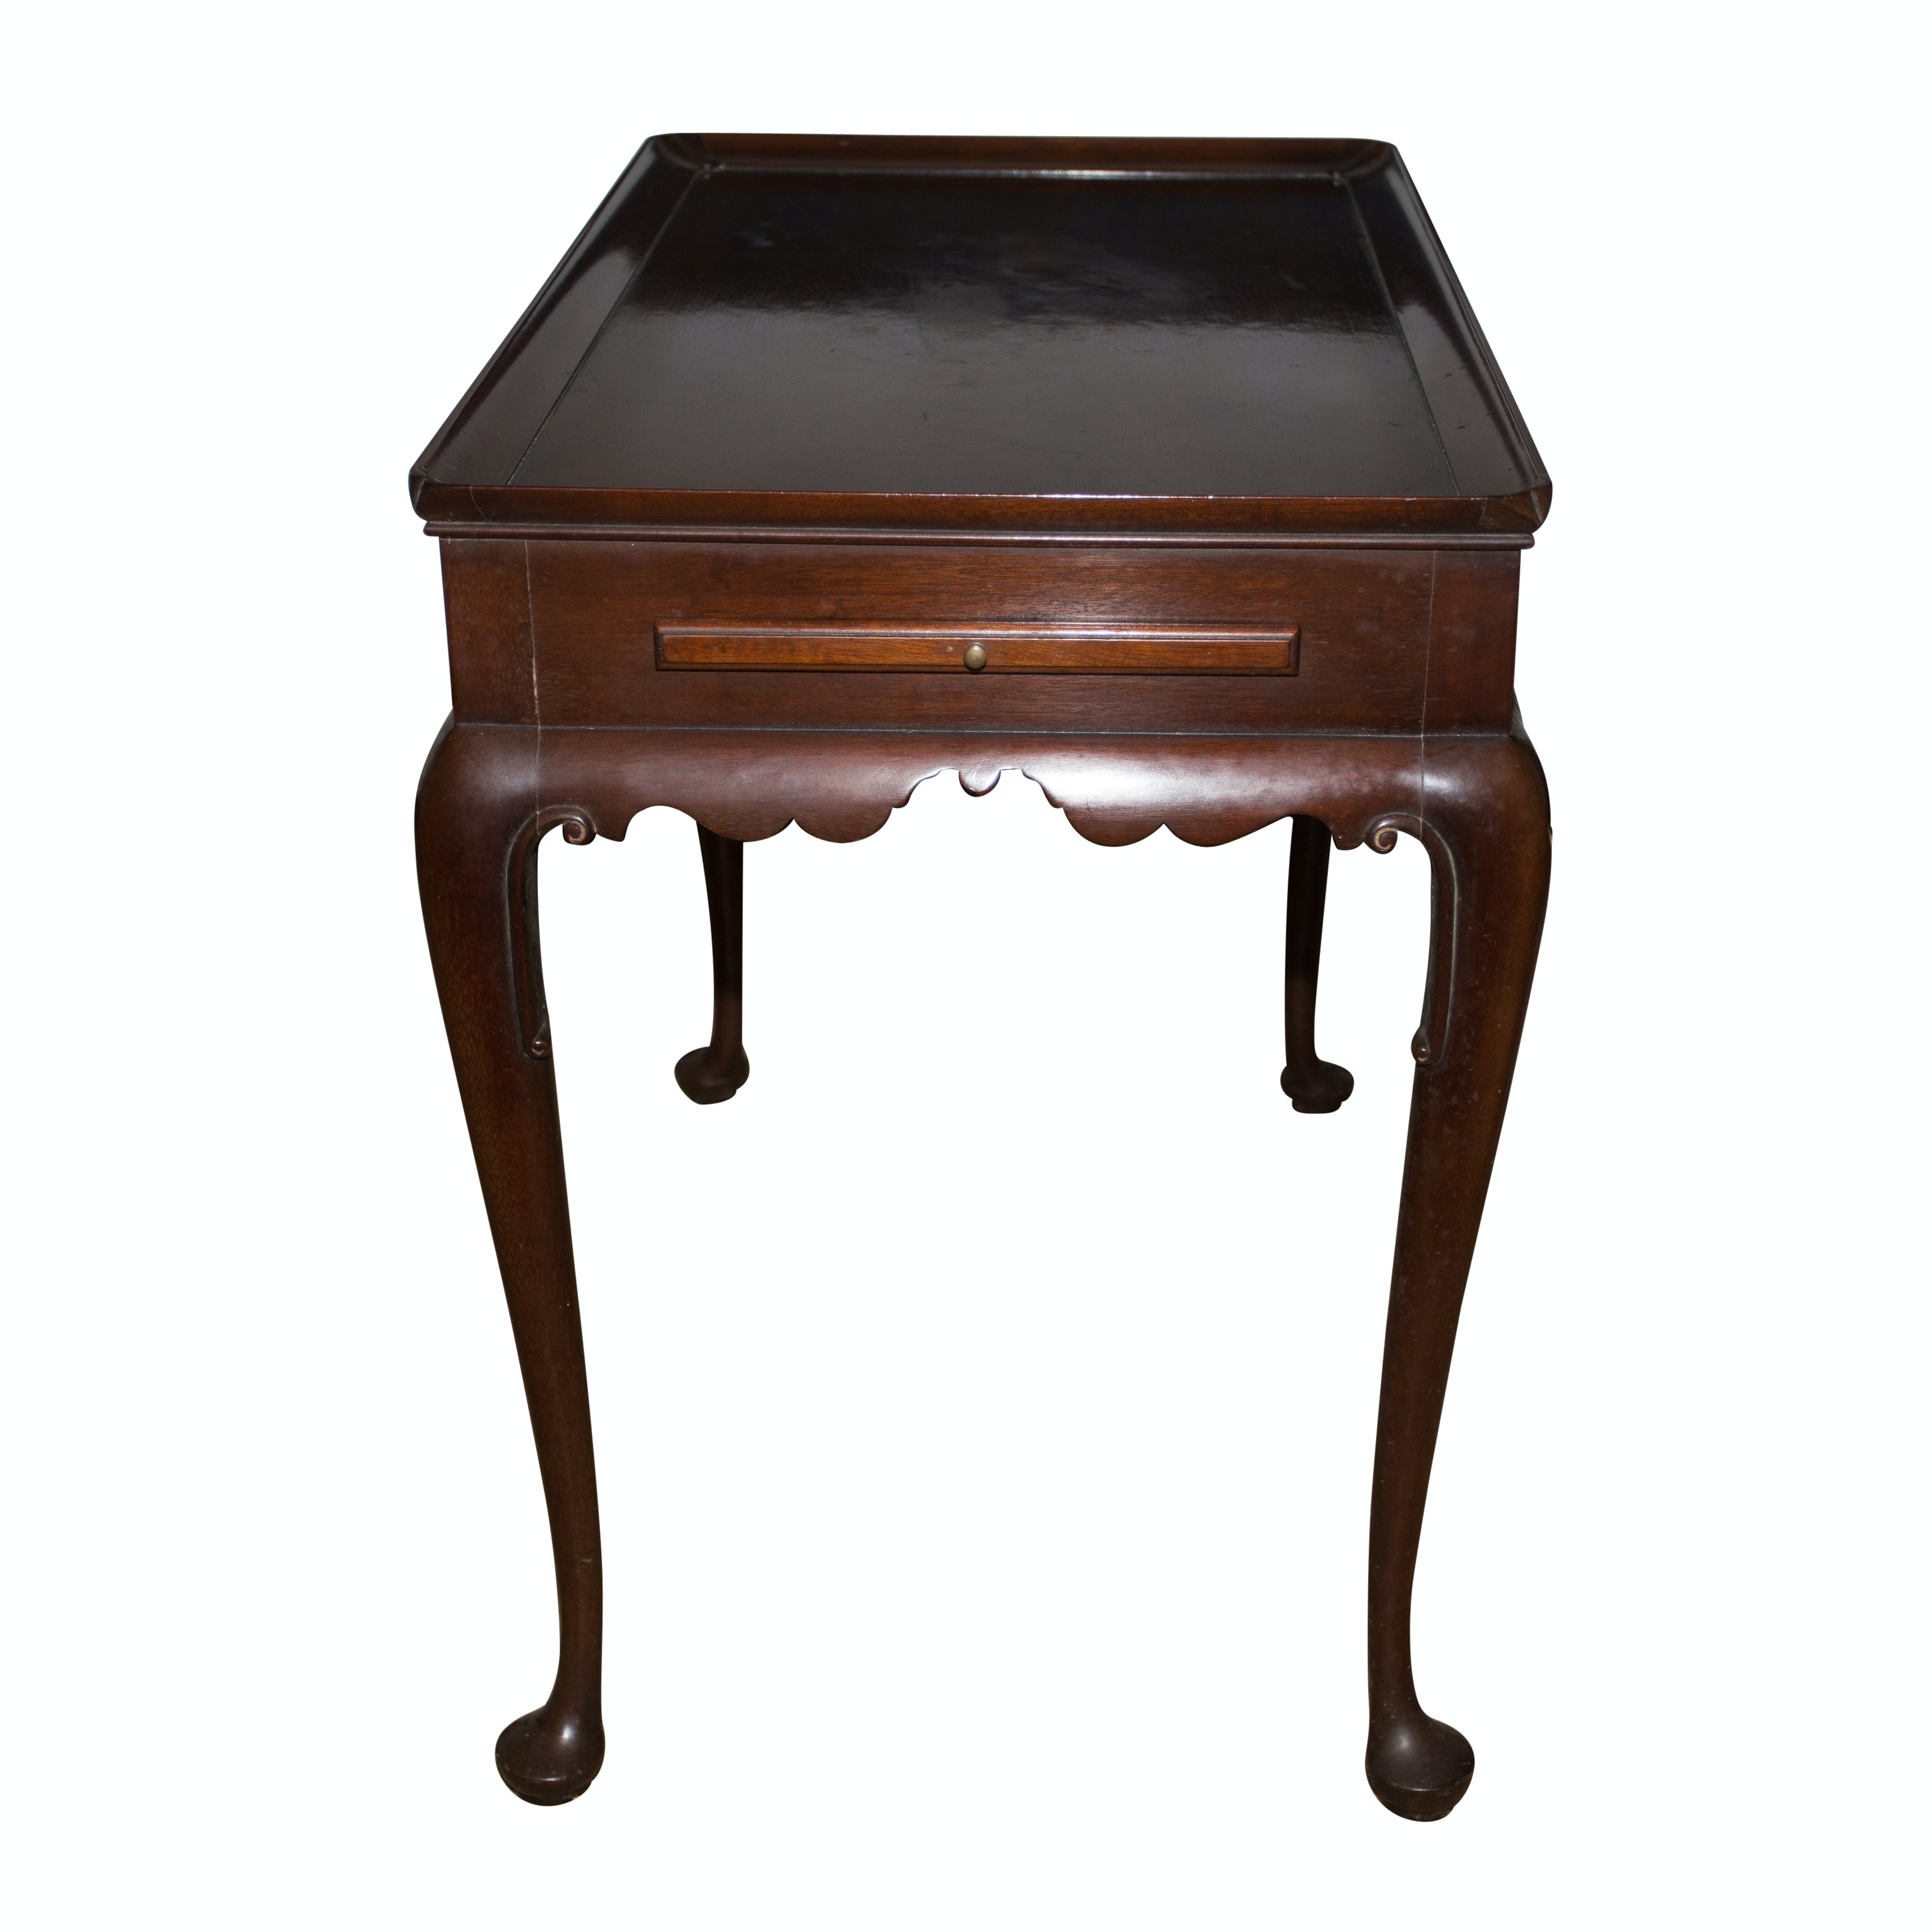 Charmant Vintage Queen Anne Style Side Table ...